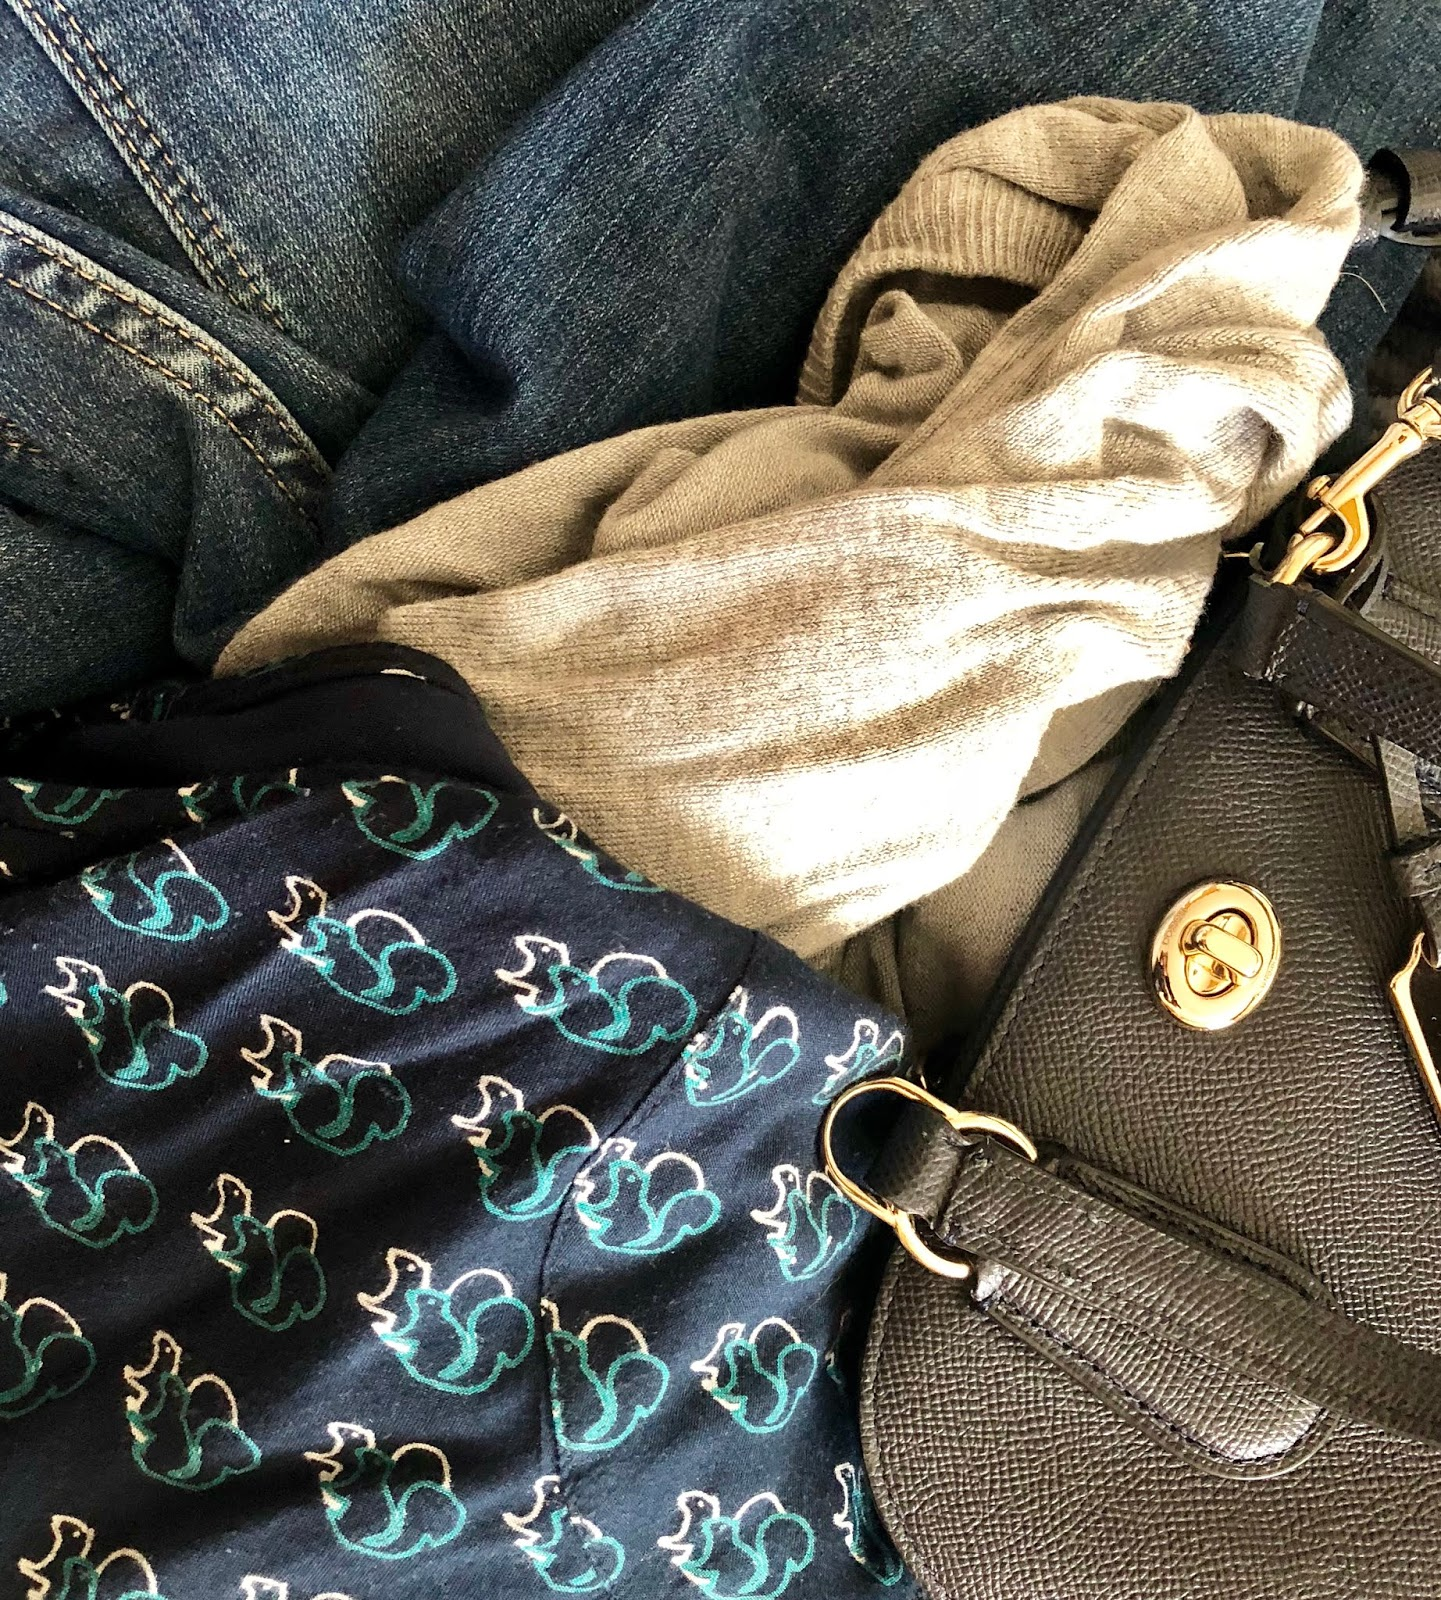 Jeans, blue bag and squirrel top